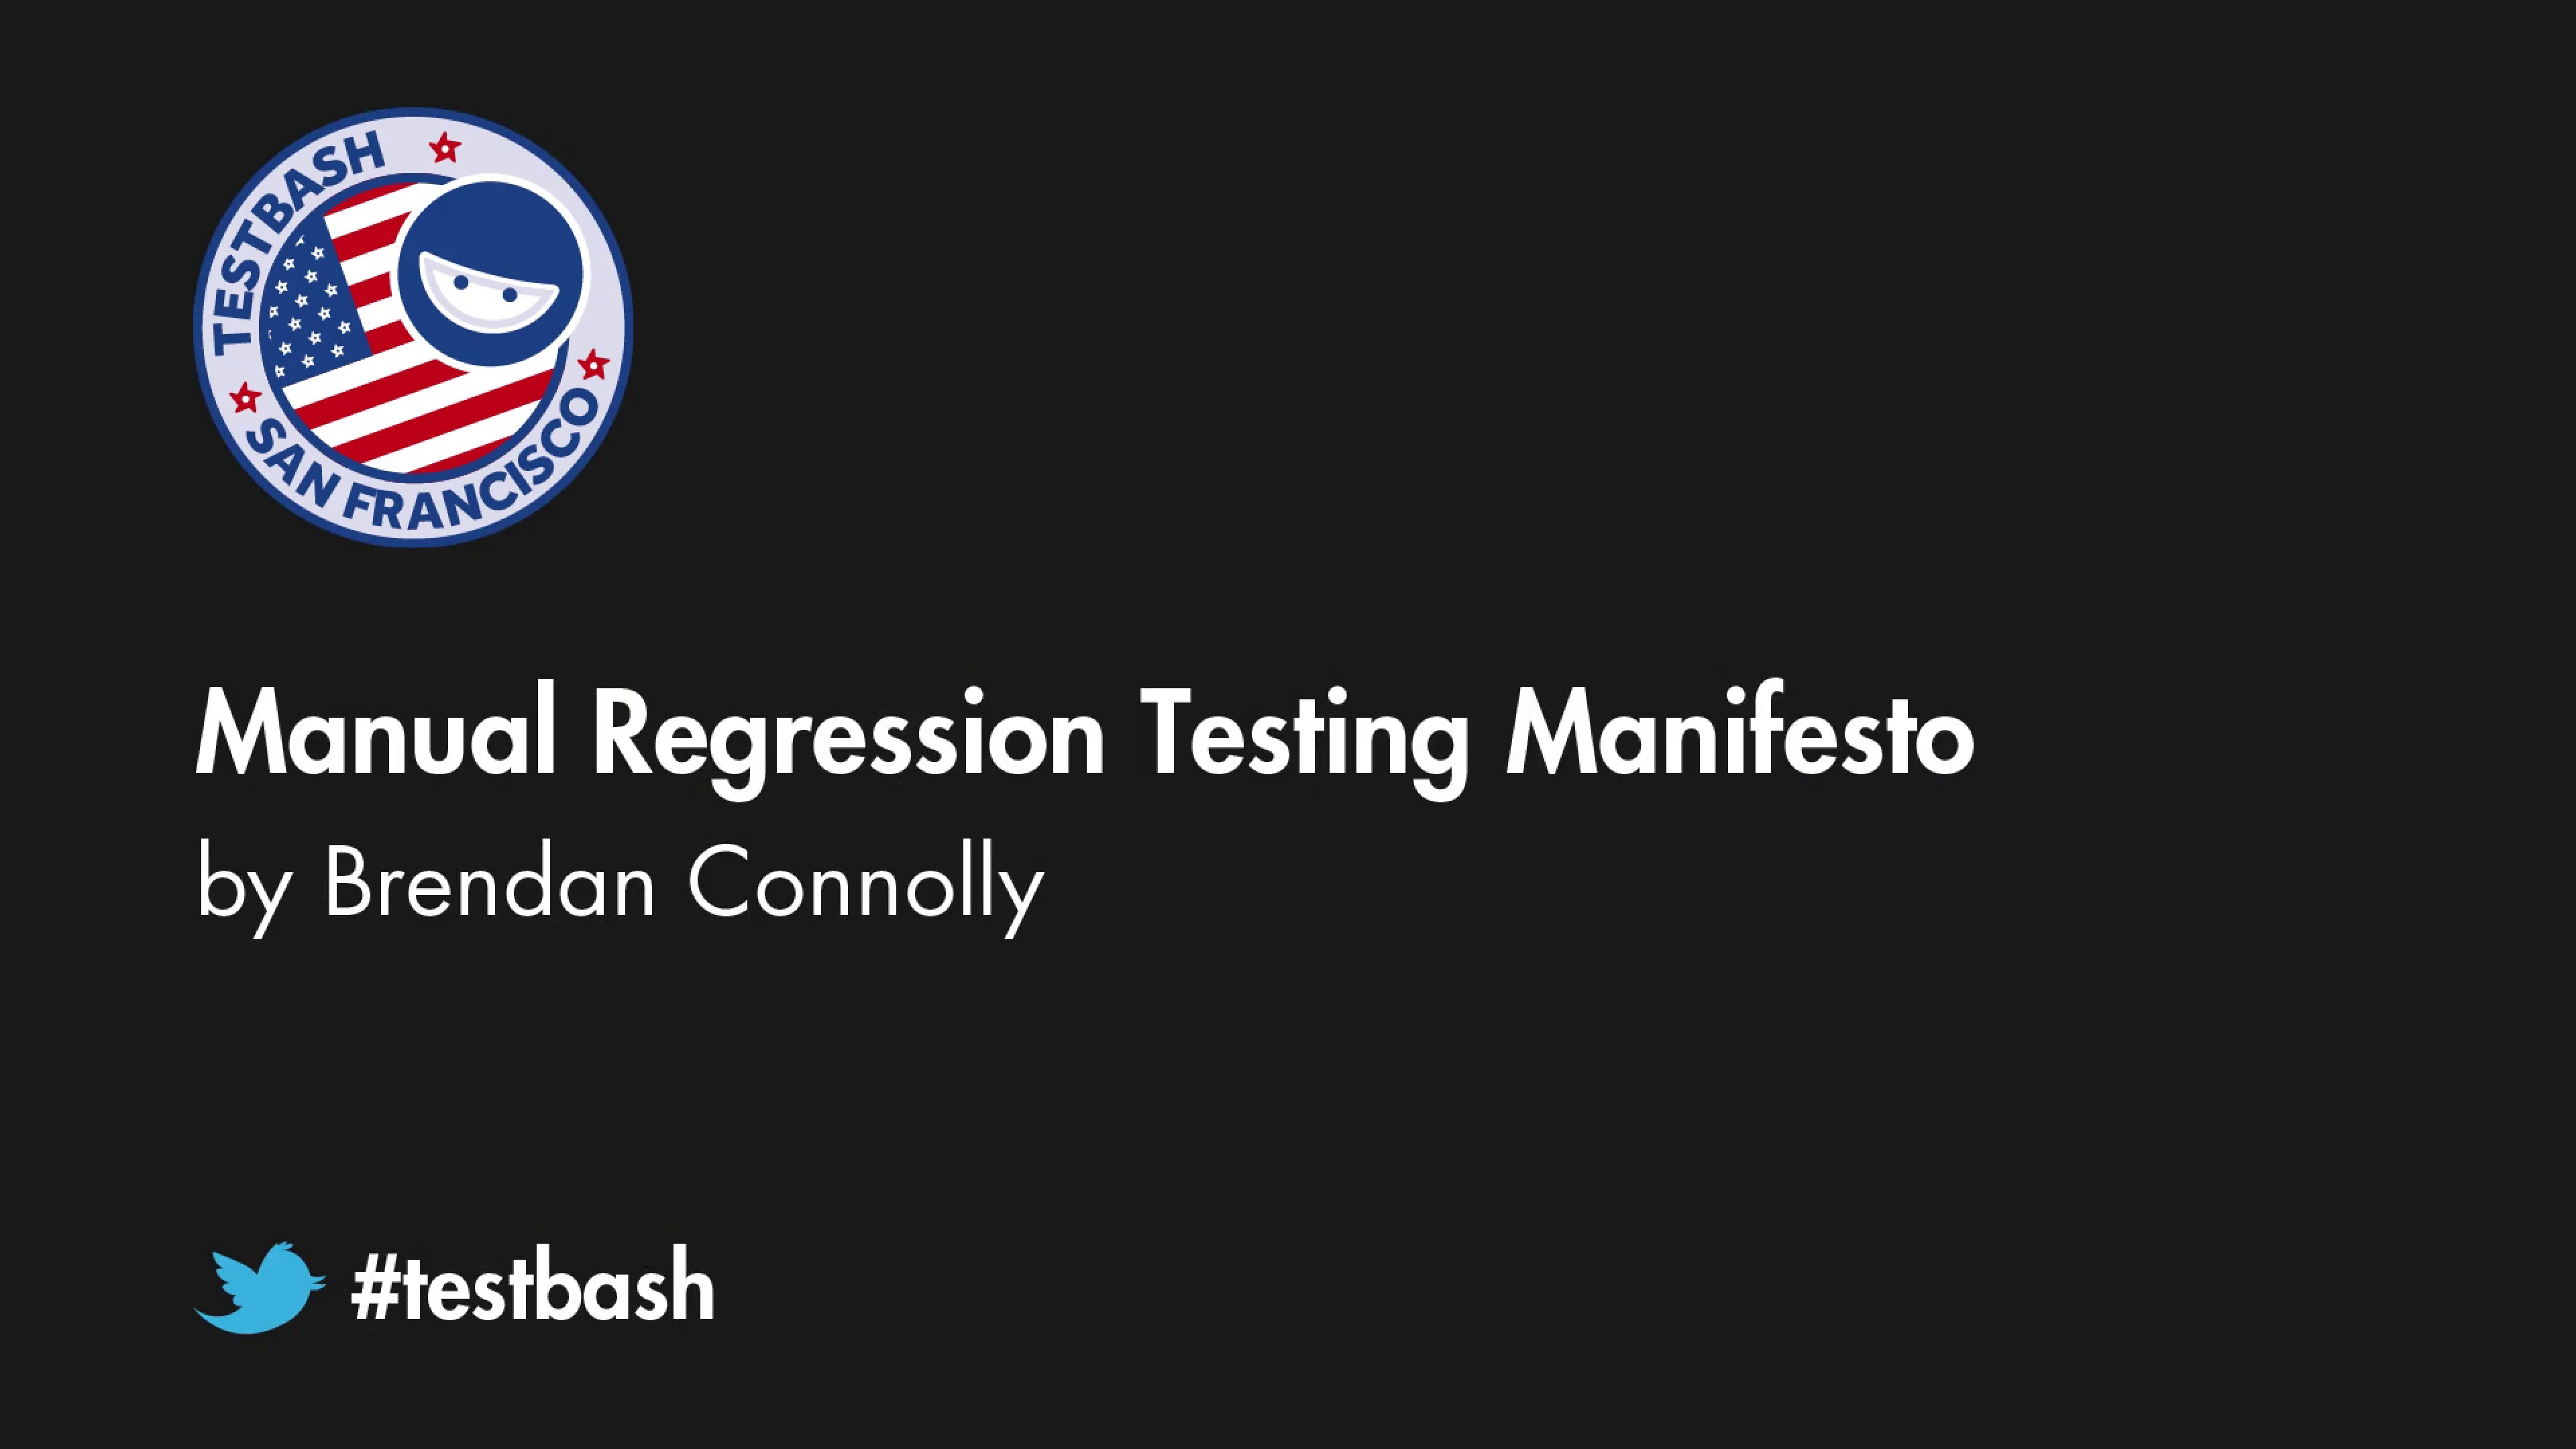 Manual Regression Testing Manifesto - Brendan Connolly